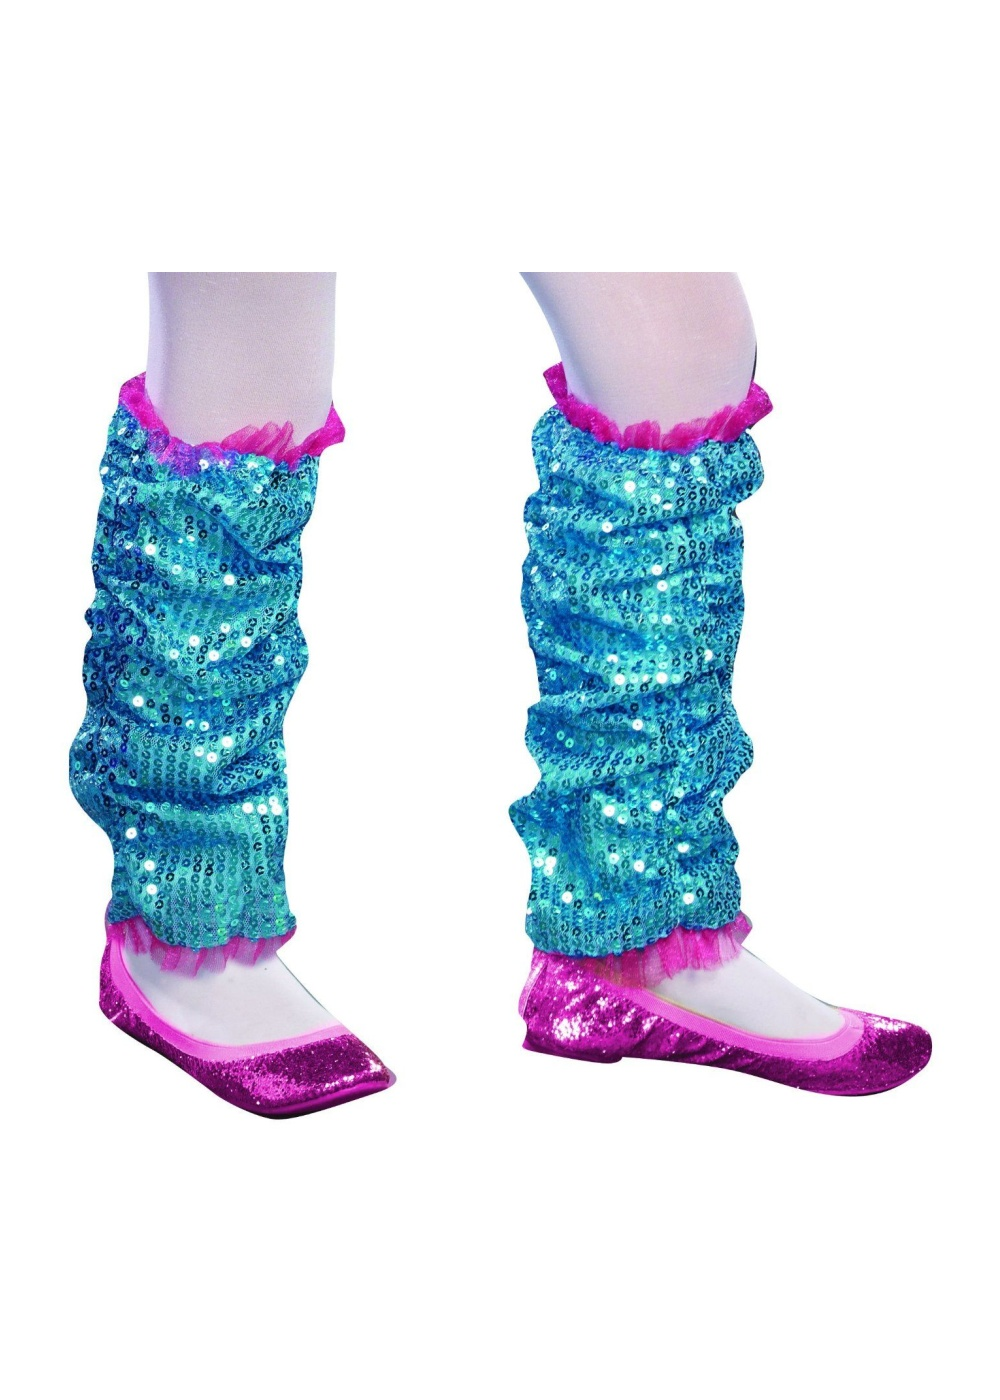 Dance Craze Girls Leg Warmers Turquoise - Girls Costume